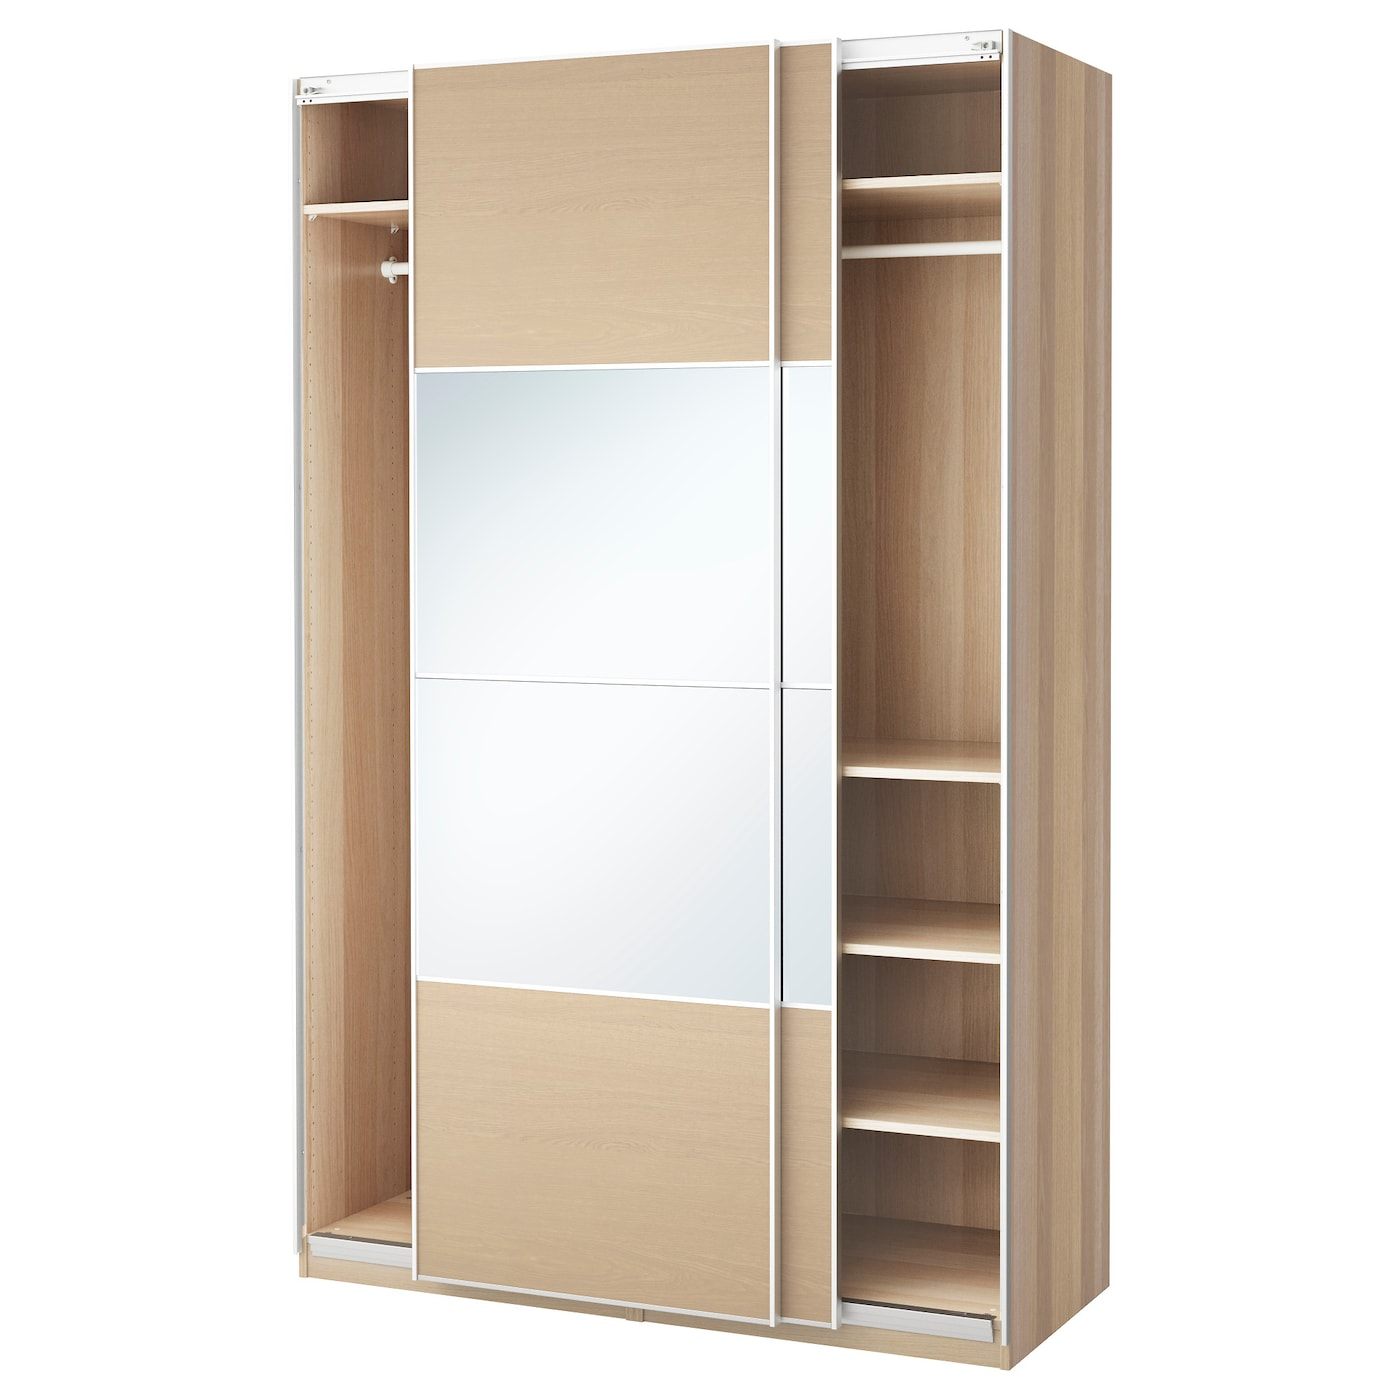 Pax wardrobe white stained oak effect auli ilseng - Ikea armoire porte coulissante ...